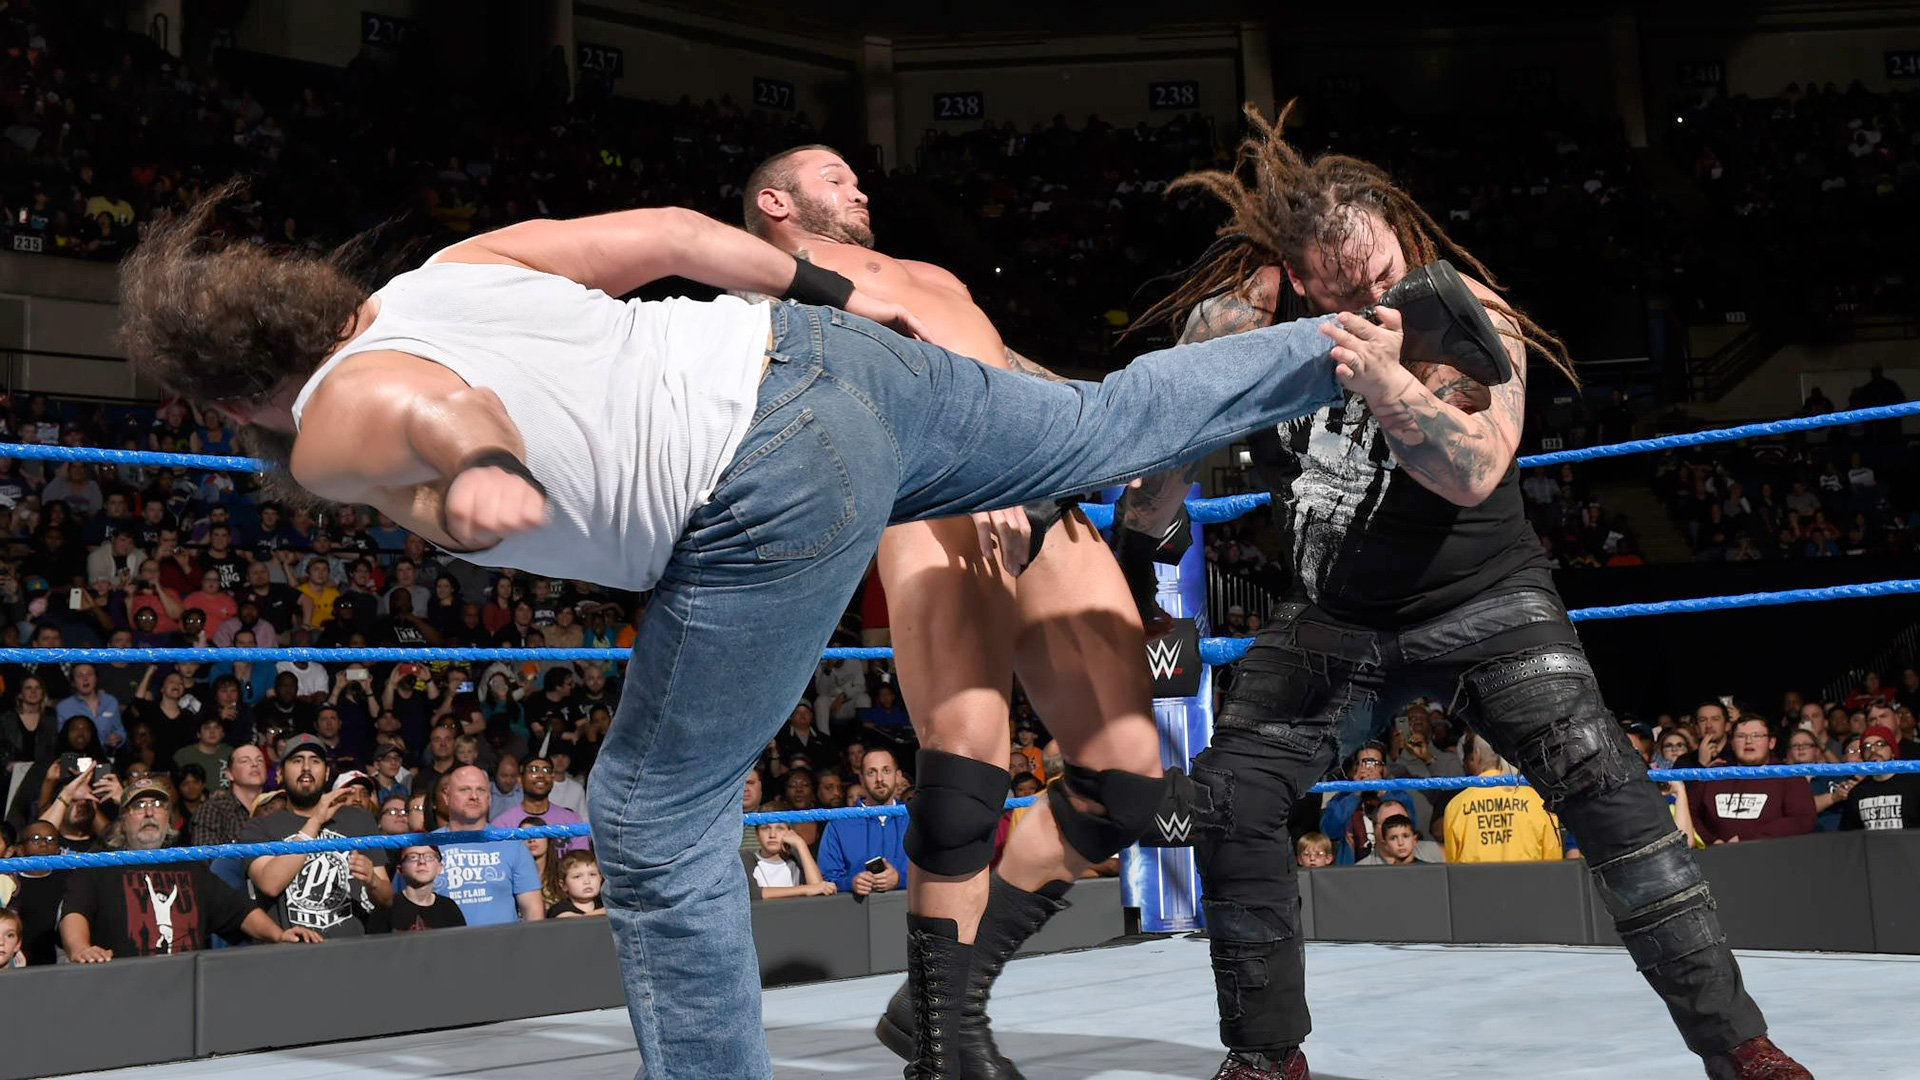 Wyatt accidentally gets knocked to the ground when Harper kicks The Eater of Worlds when aiming for Orton.